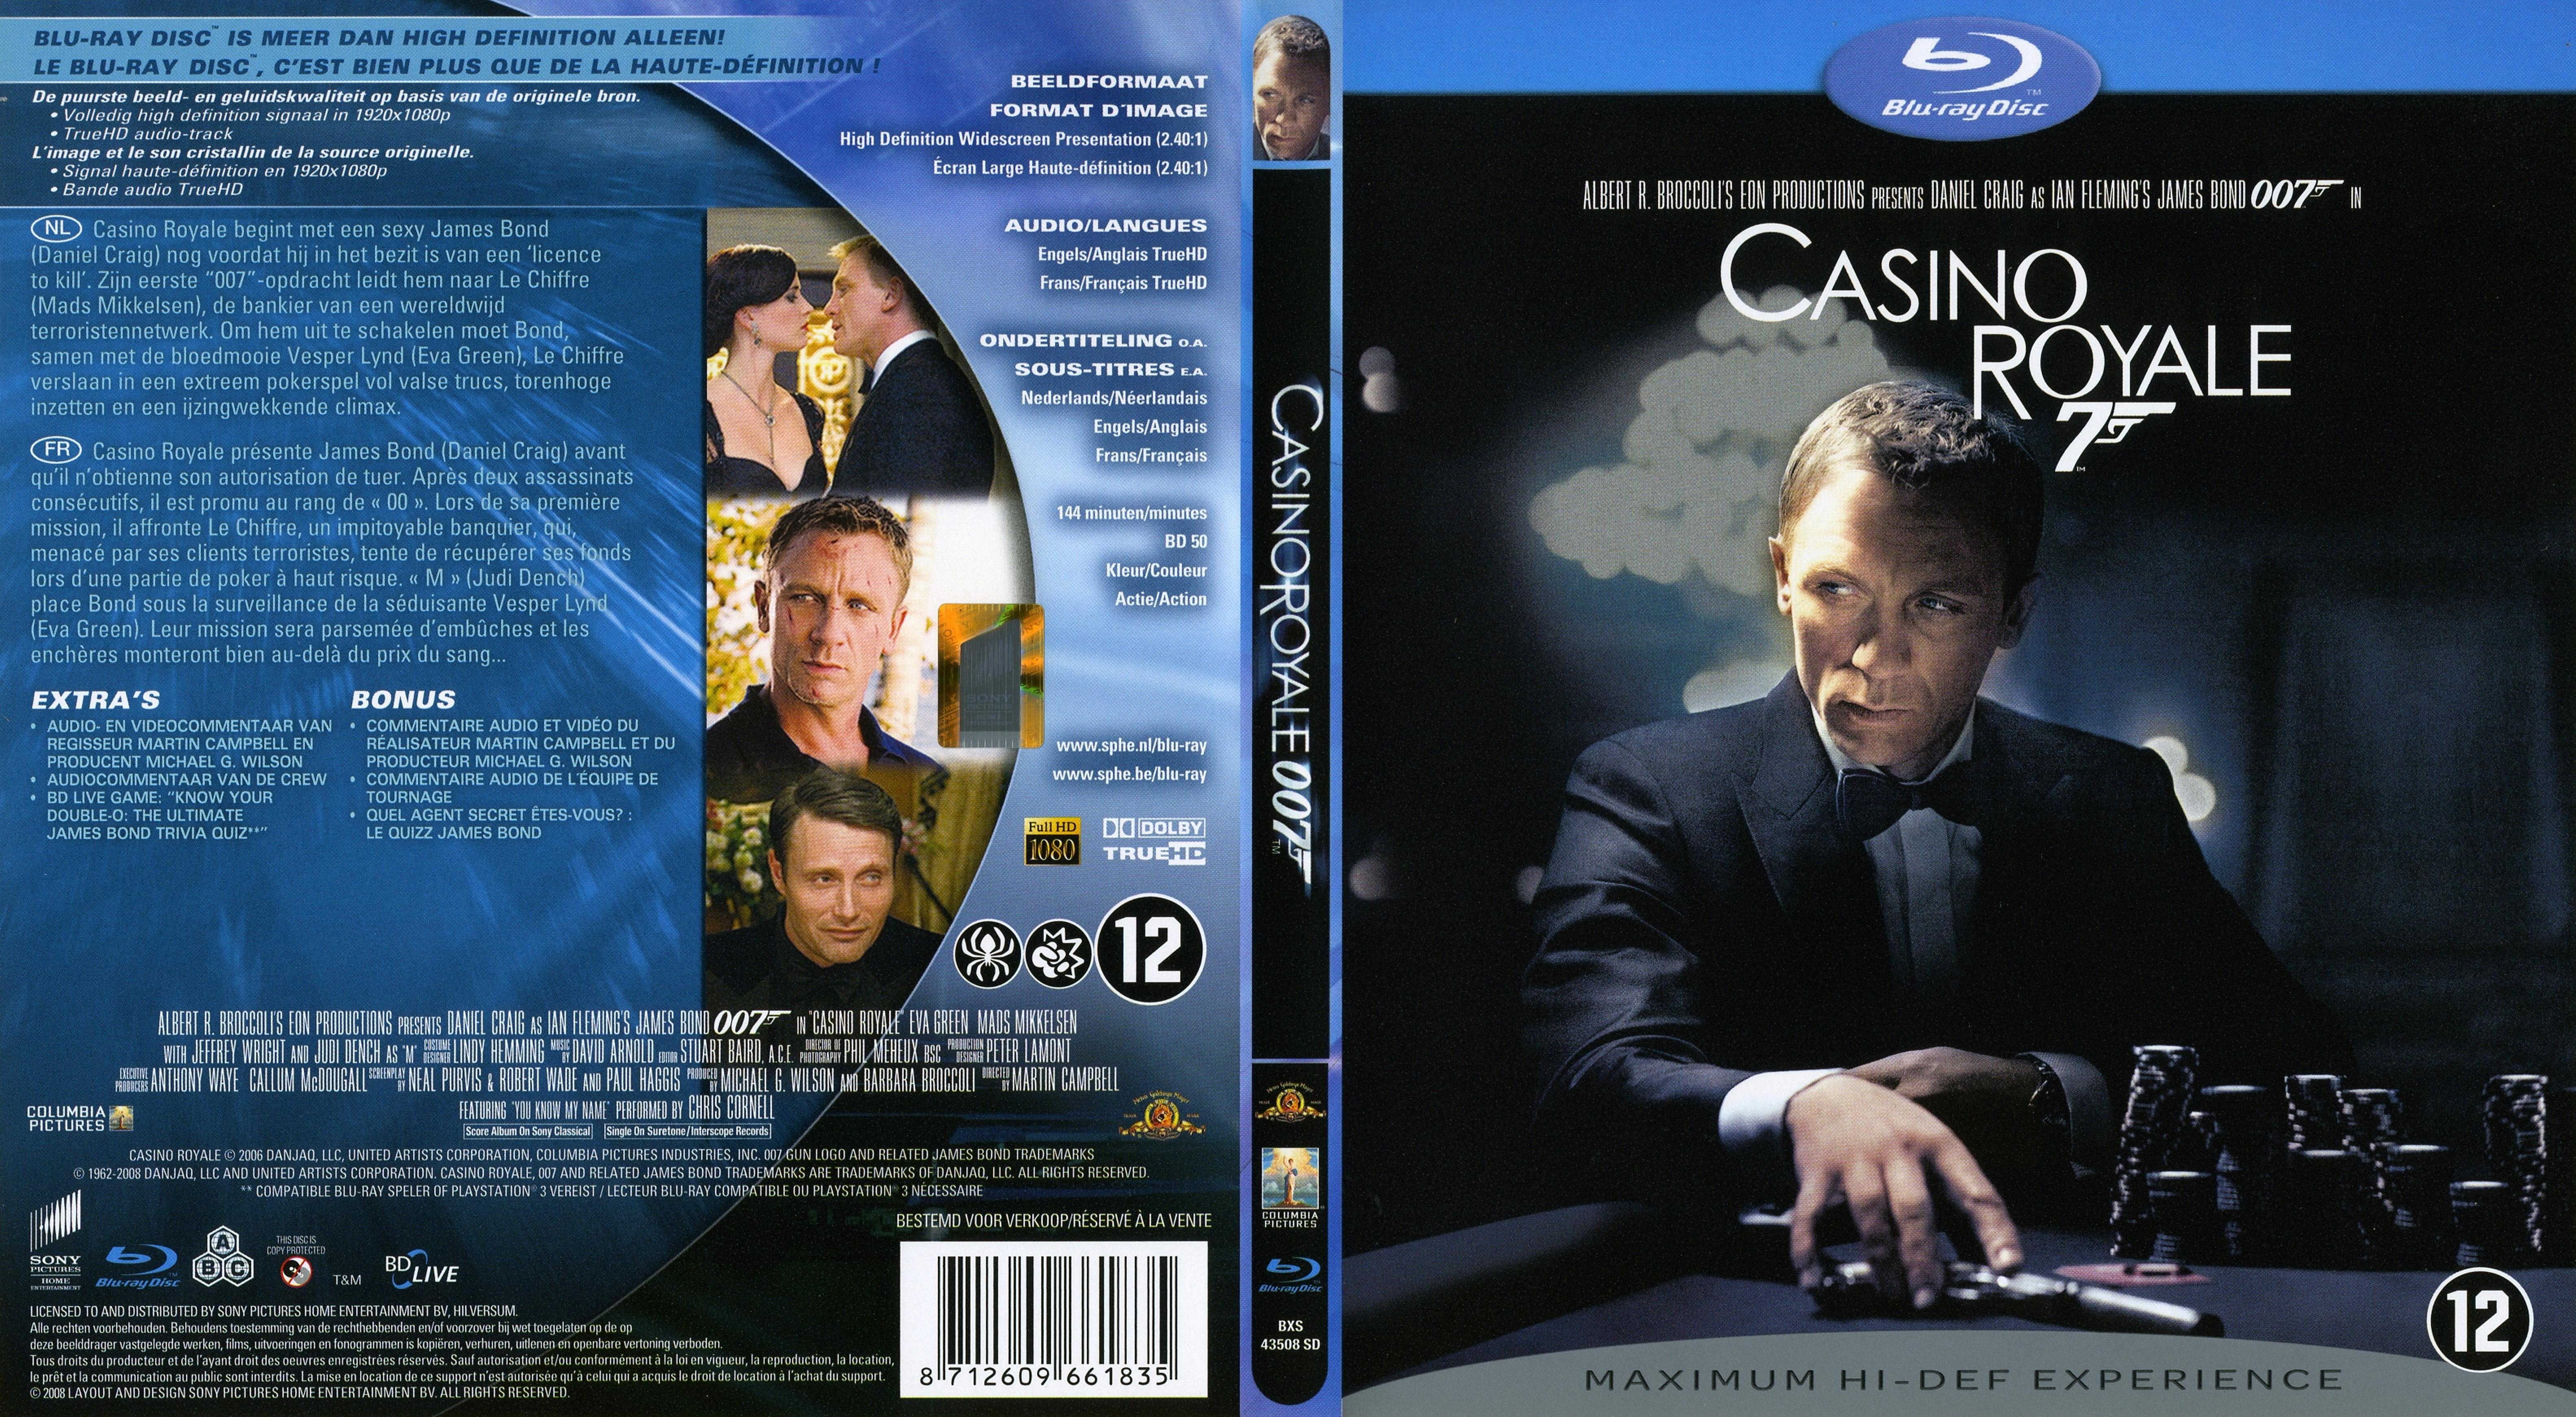 casino royale 2006 full movie online free book of ran